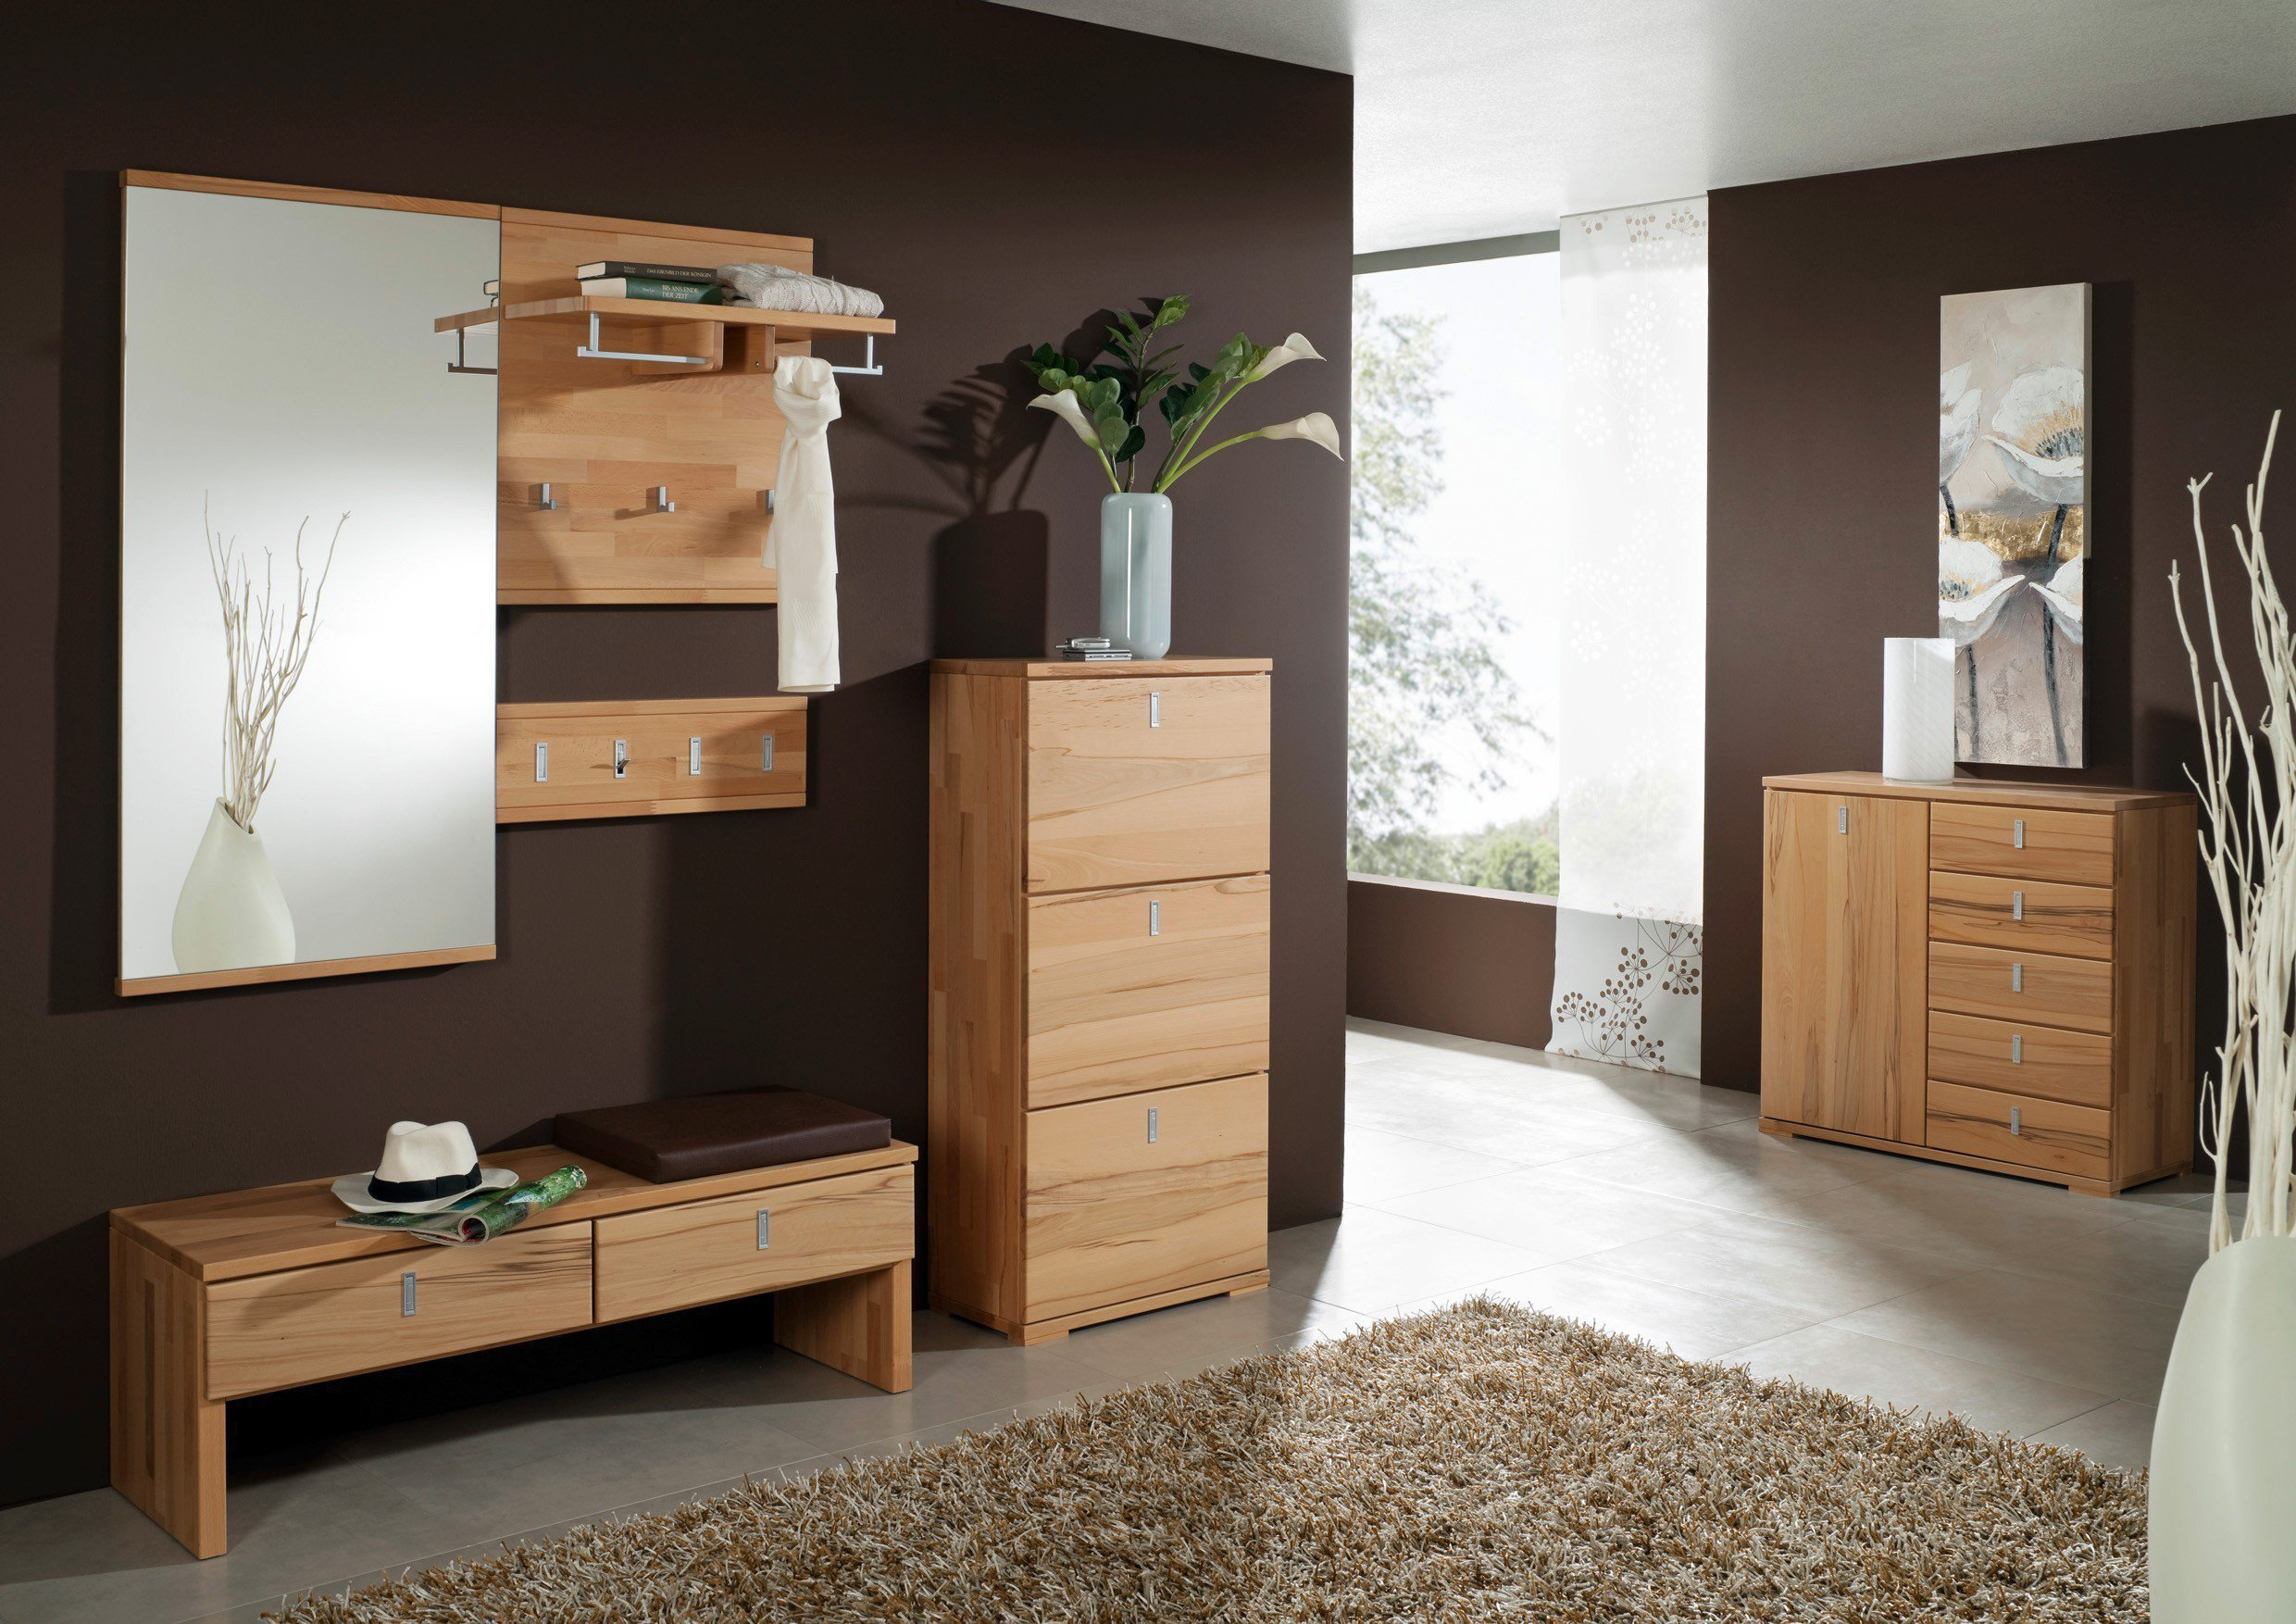 bienenm hle garderobe vido set 06 kernbuche m bel letz. Black Bedroom Furniture Sets. Home Design Ideas